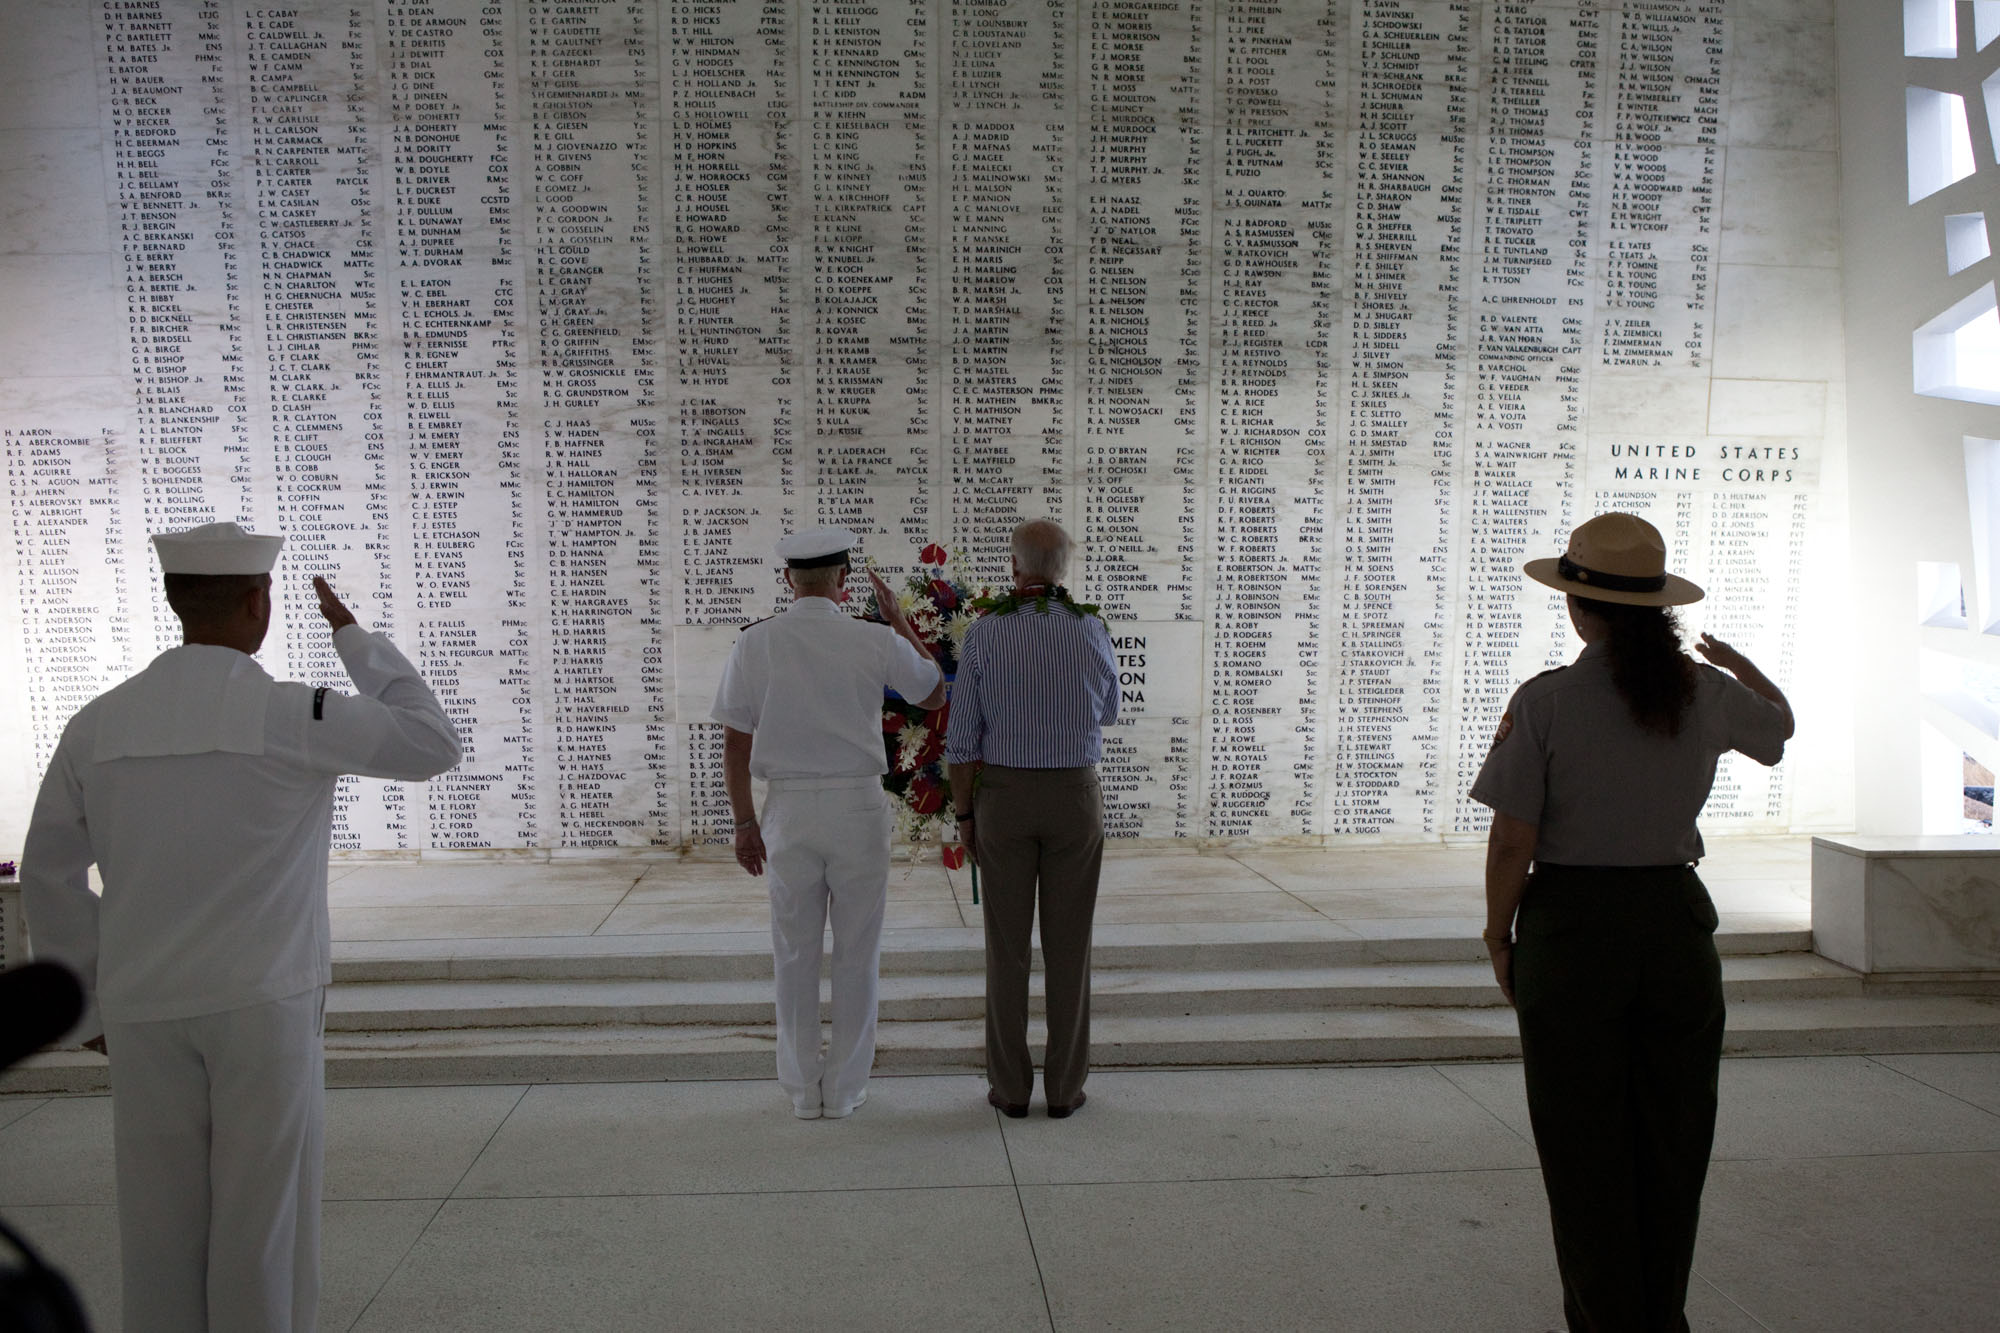 Vice President Joe Biden pays his respects at the USS Arizona Memorial